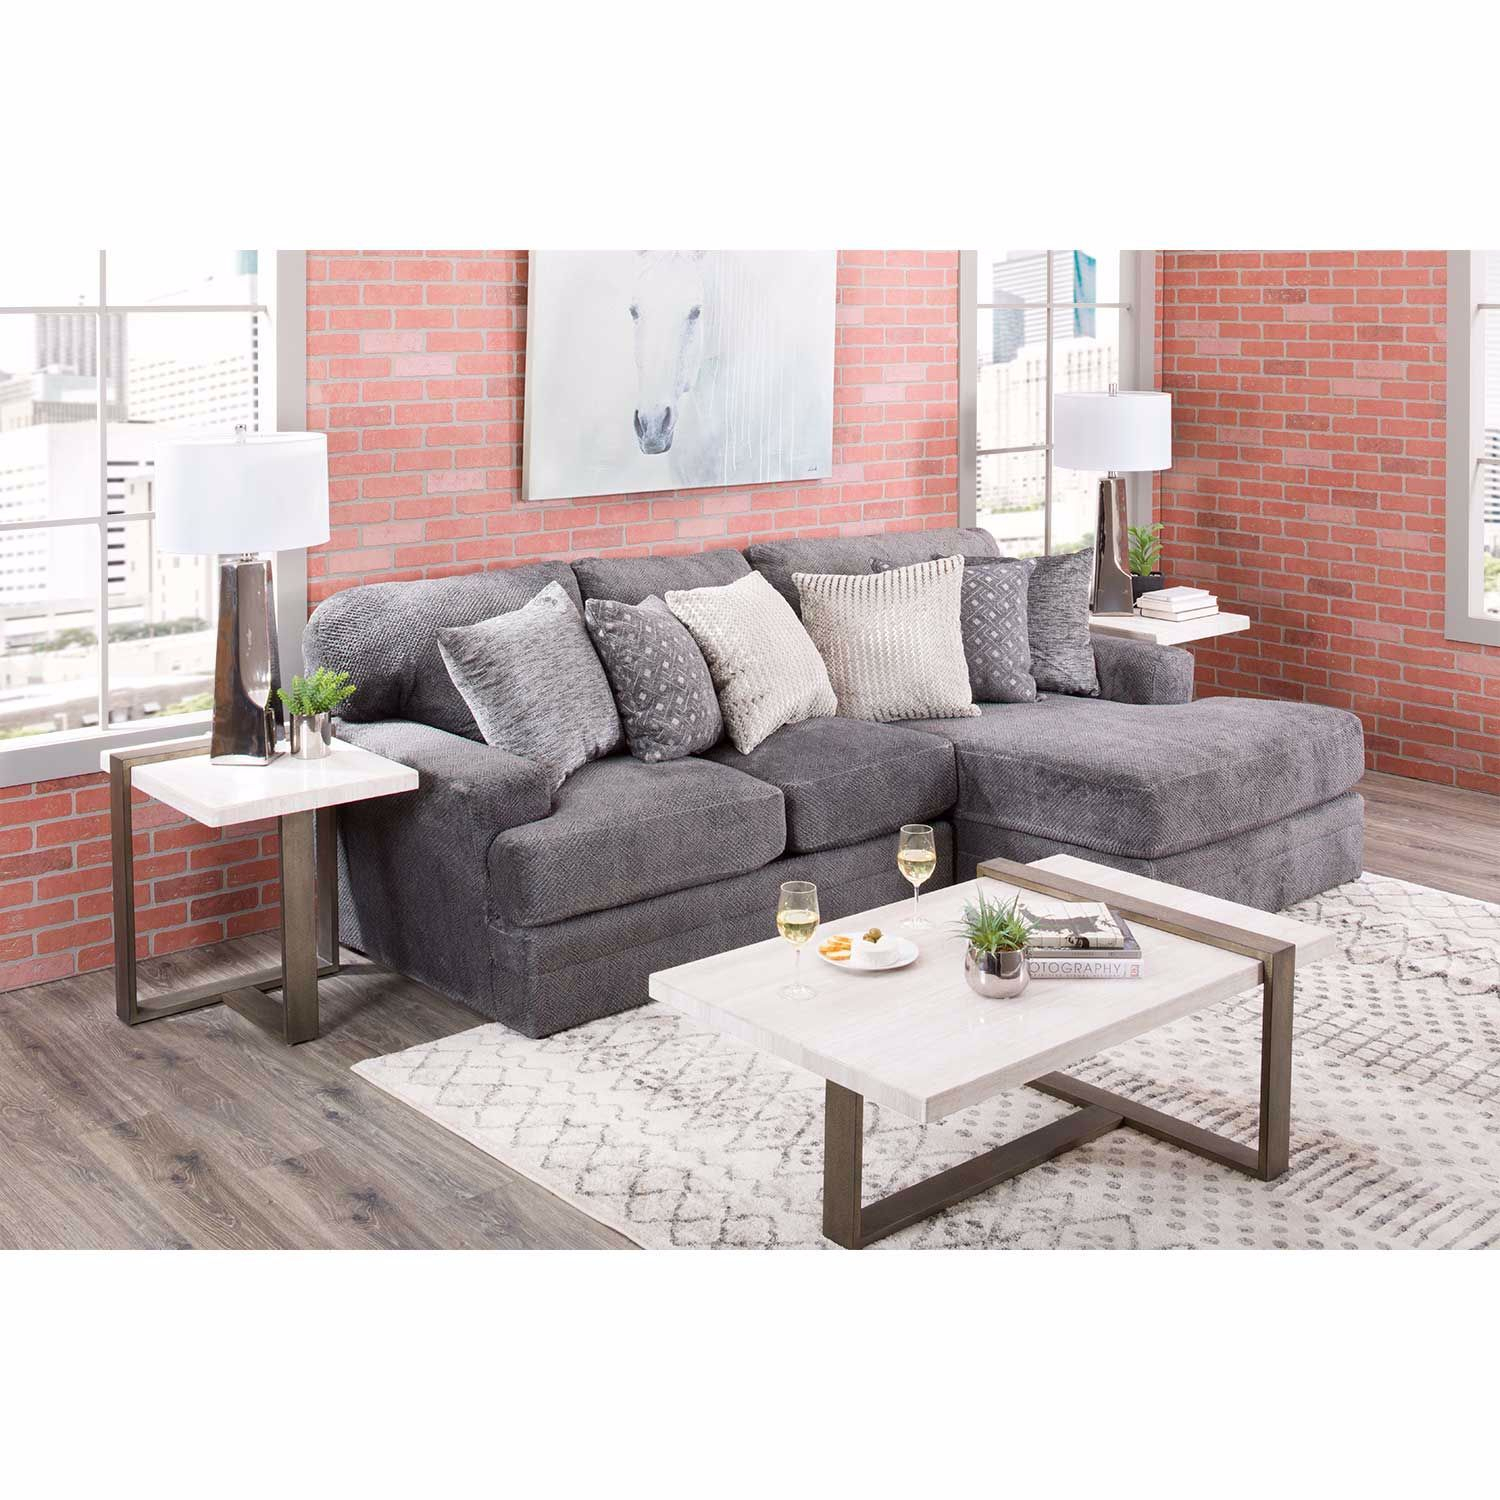 Mammoth 2 Piece Sectional With Raf Chaise | 4376 76/46 For Avery 2 Piece Sectionals With Raf Armless Chaise (View 14 of 15)